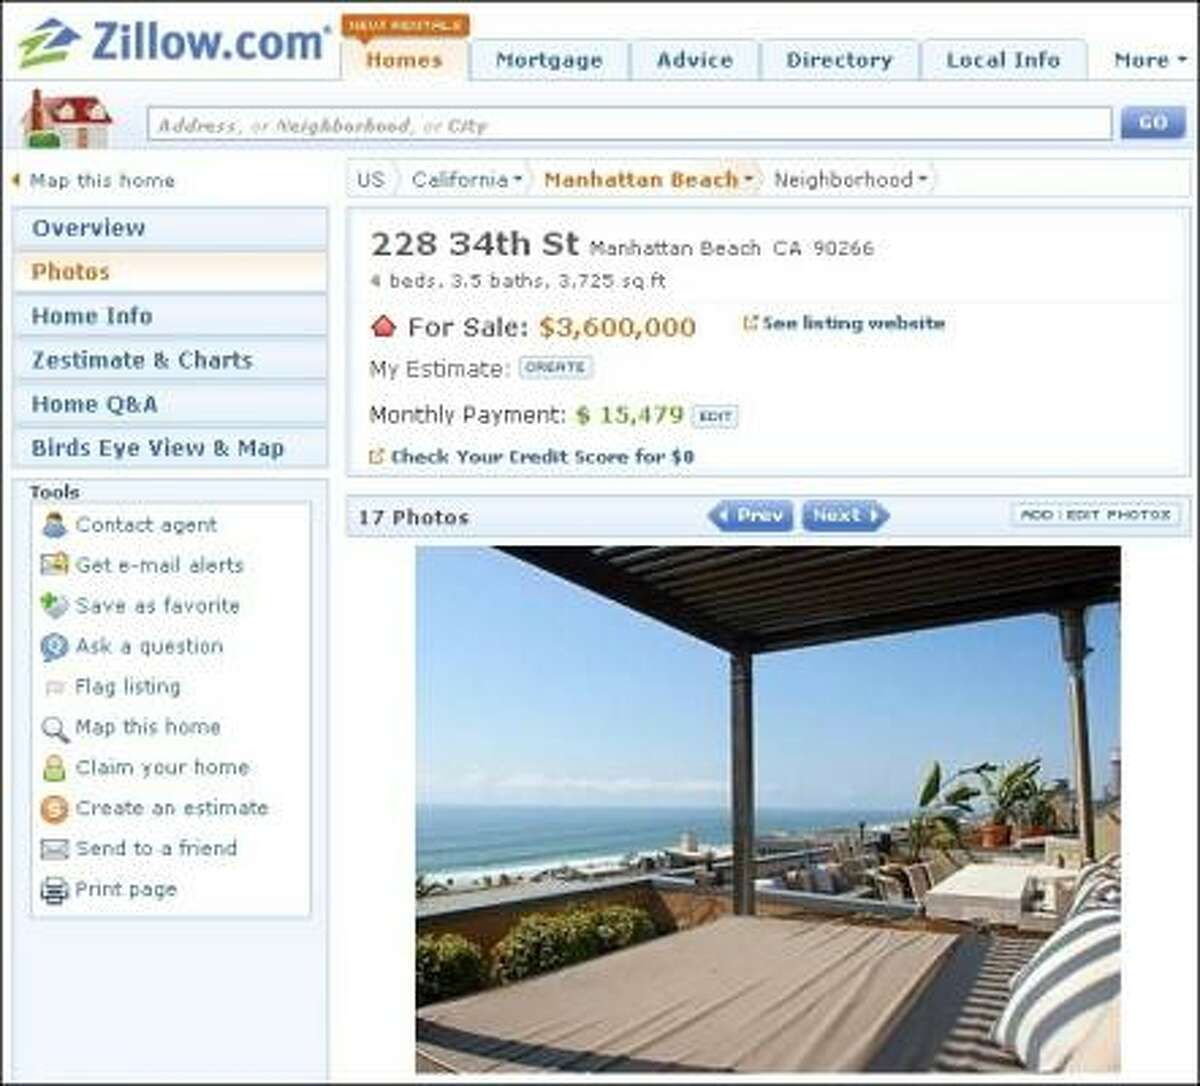 PACIFIC DEAL: The Manhattan Beach, Calif., home of Atlanta Falcons tight-end Tony Gonzalez is for sale for $3.6 million.